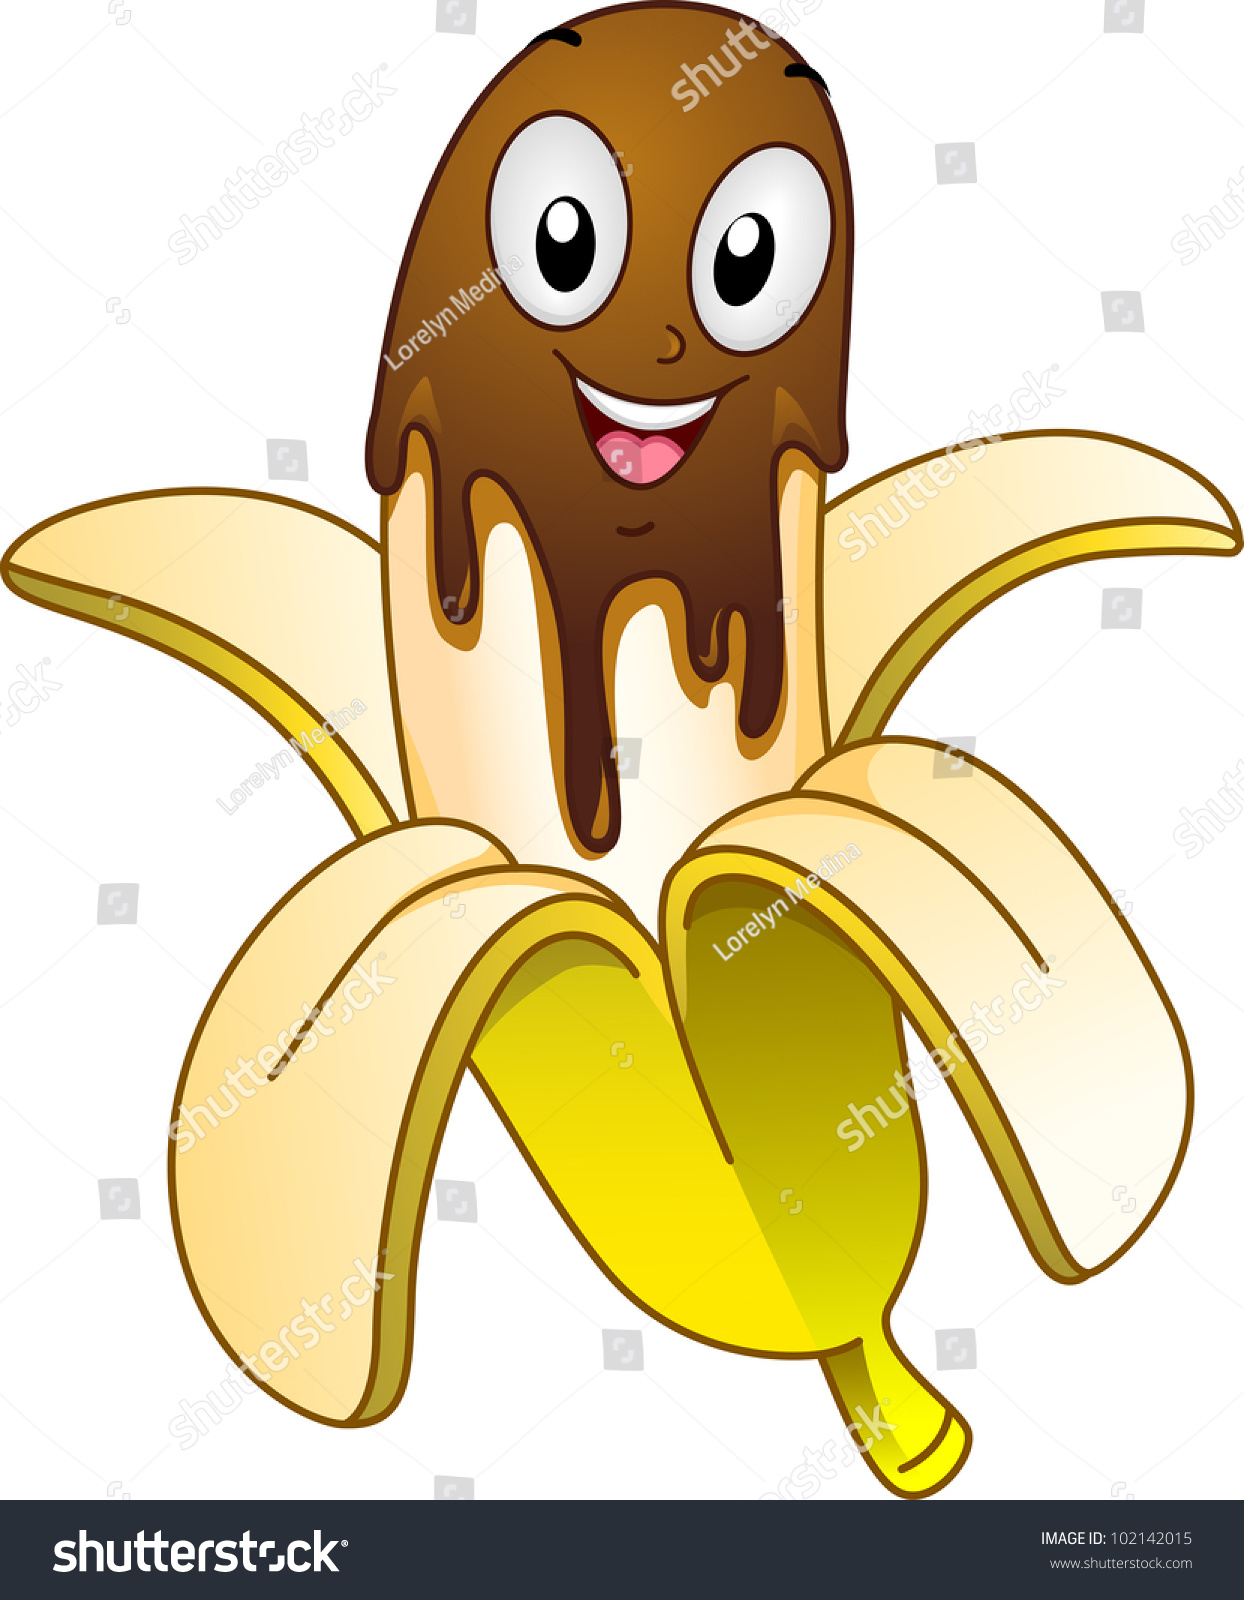 Mascot Illustration Featuring Banana Covered Chocolate ...